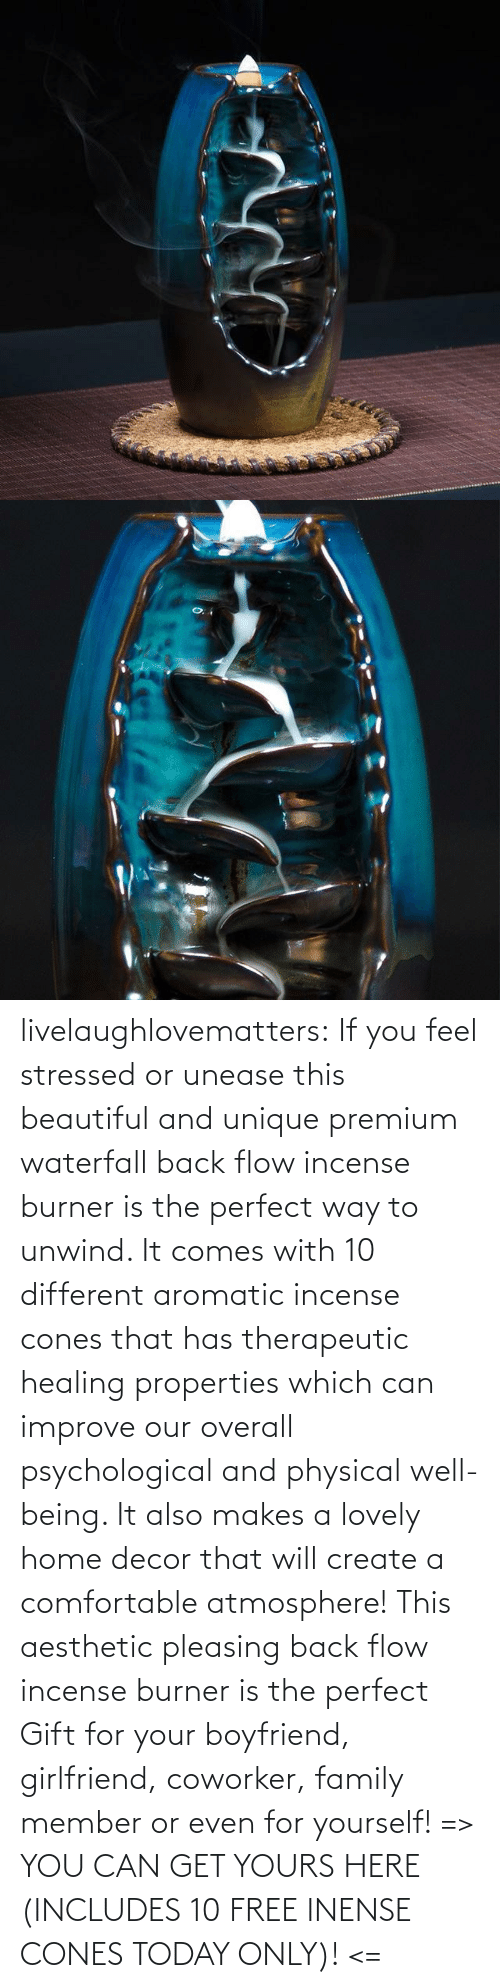 M 1: livelaughlovematters: If you feel stressed or unease this beautiful and unique premium waterfall back flow incense burner is the perfect way to unwind. It comes with 10 different aromatic incense cones that has therapeutic healing properties which can improve our overall psychological and physical well-being. It also makes a lovely home decor that will create a comfortable atmosphere! This aesthetic pleasing back flow incense burner is the perfect Gift for your boyfriend, girlfriend, coworker, family member or even for yourself! => YOU CAN GET YOURS HERE (INCLUDES 10 FREE INENSE CONES TODAY ONLY)! <=